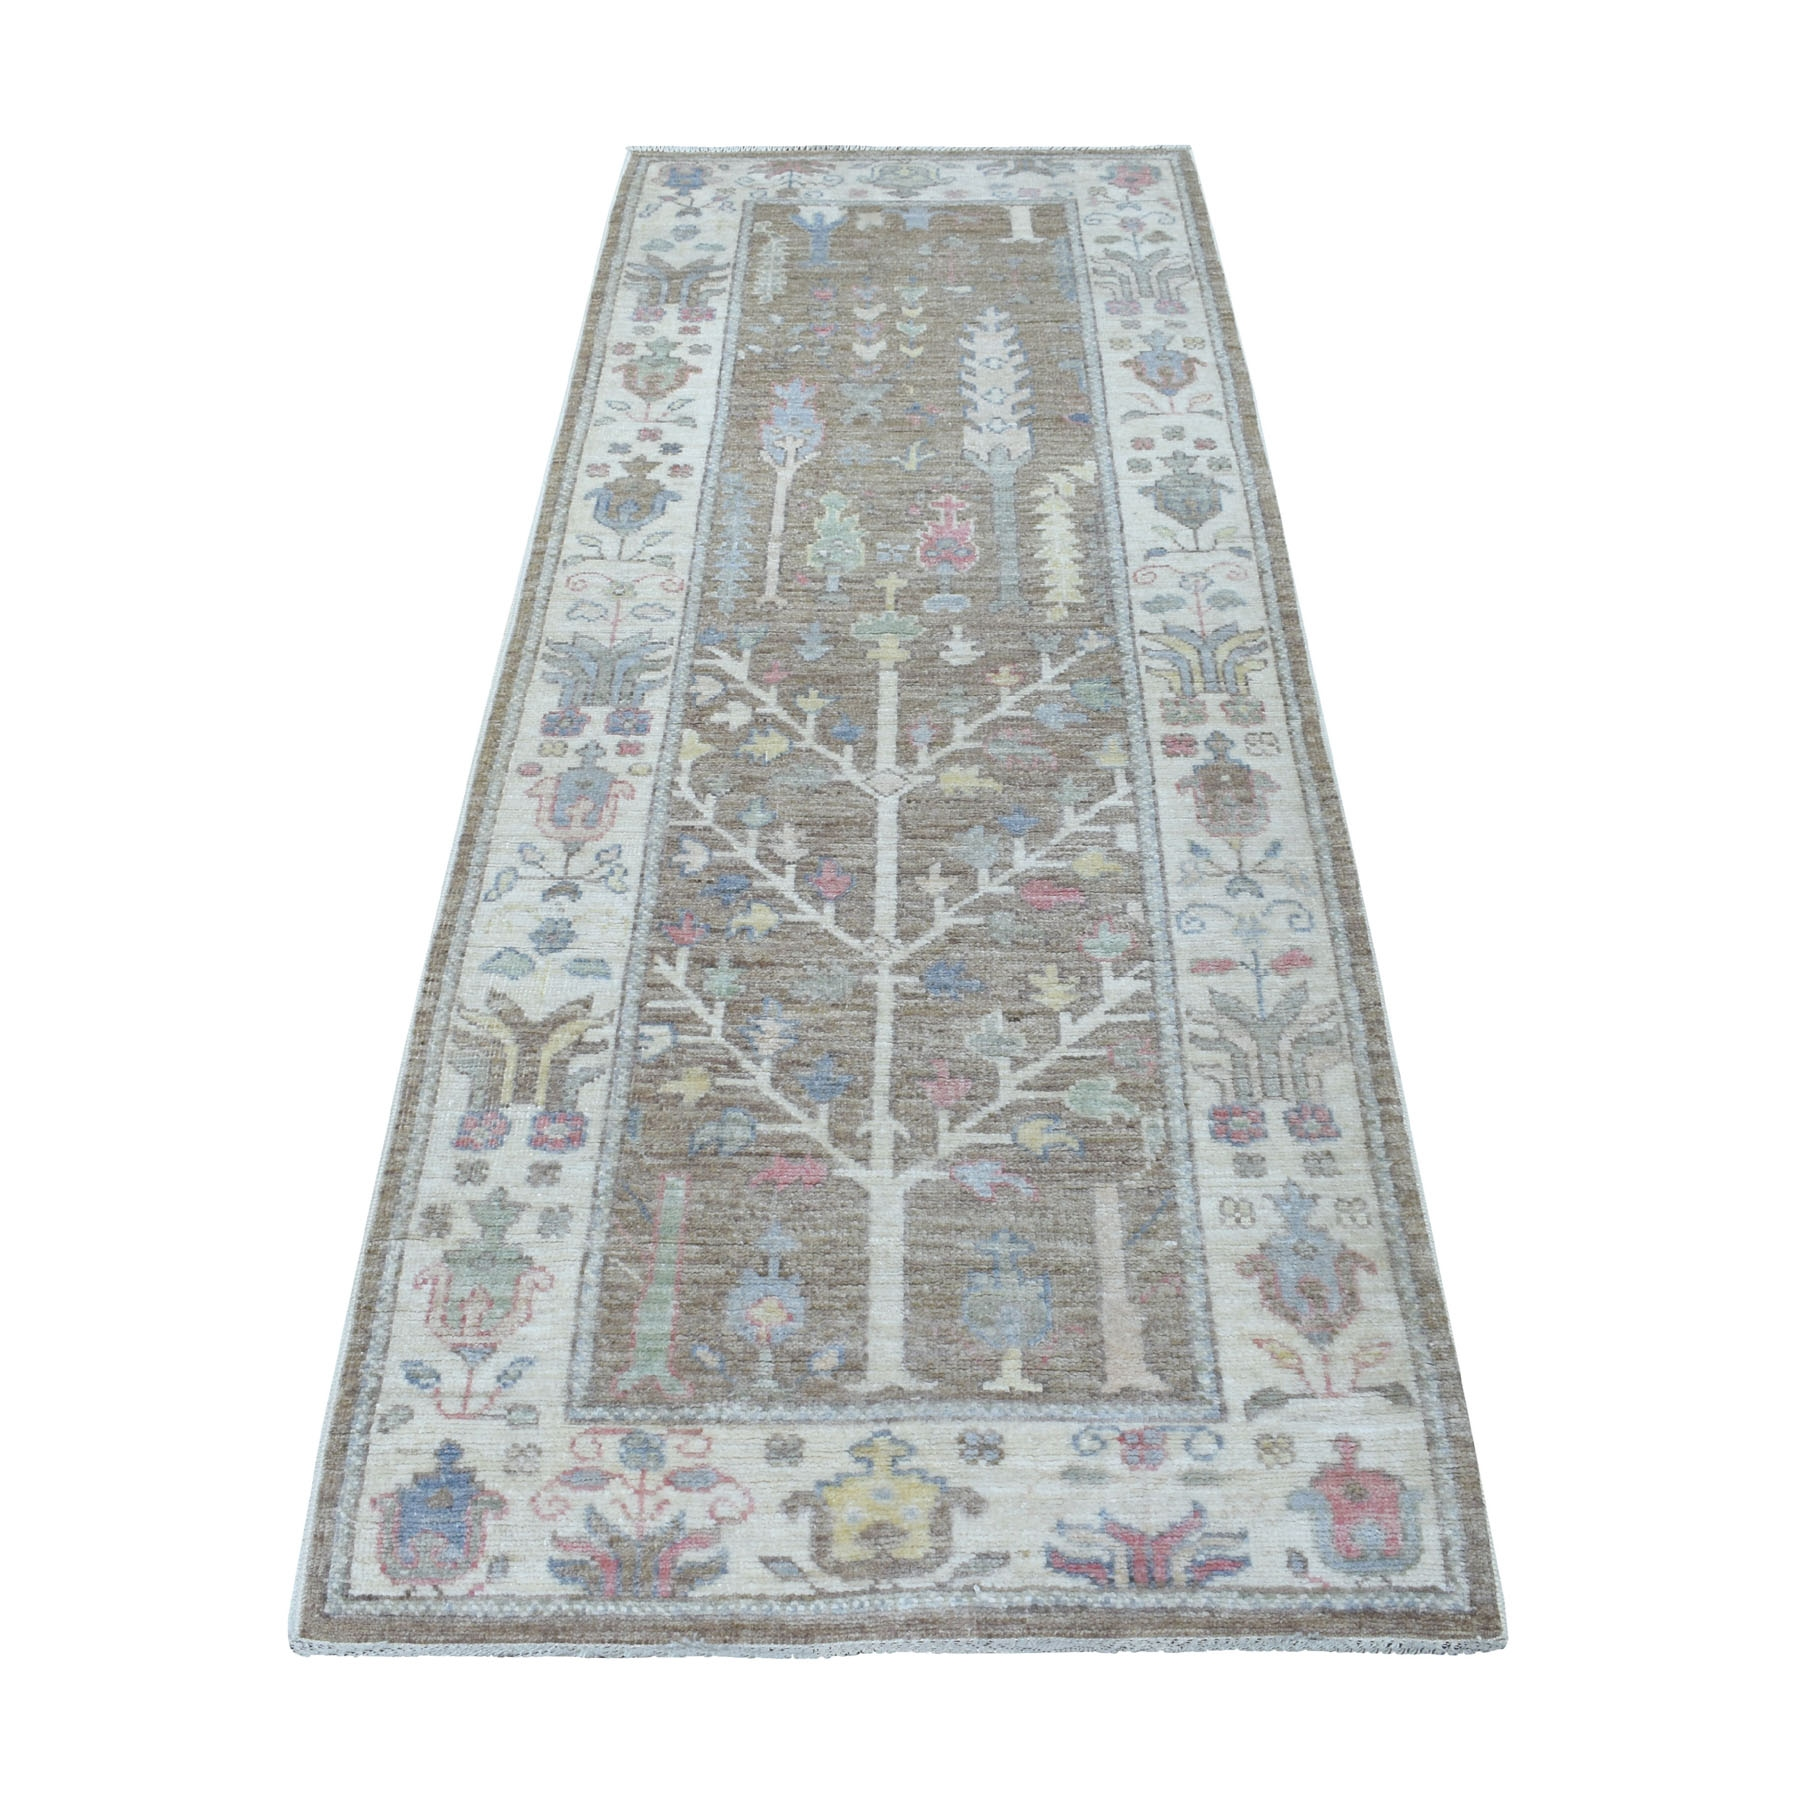 3'x8' Brown Angora Oushak With Cypress Tree Design Pure Wool Hand Knotted Oriental Runner Rug